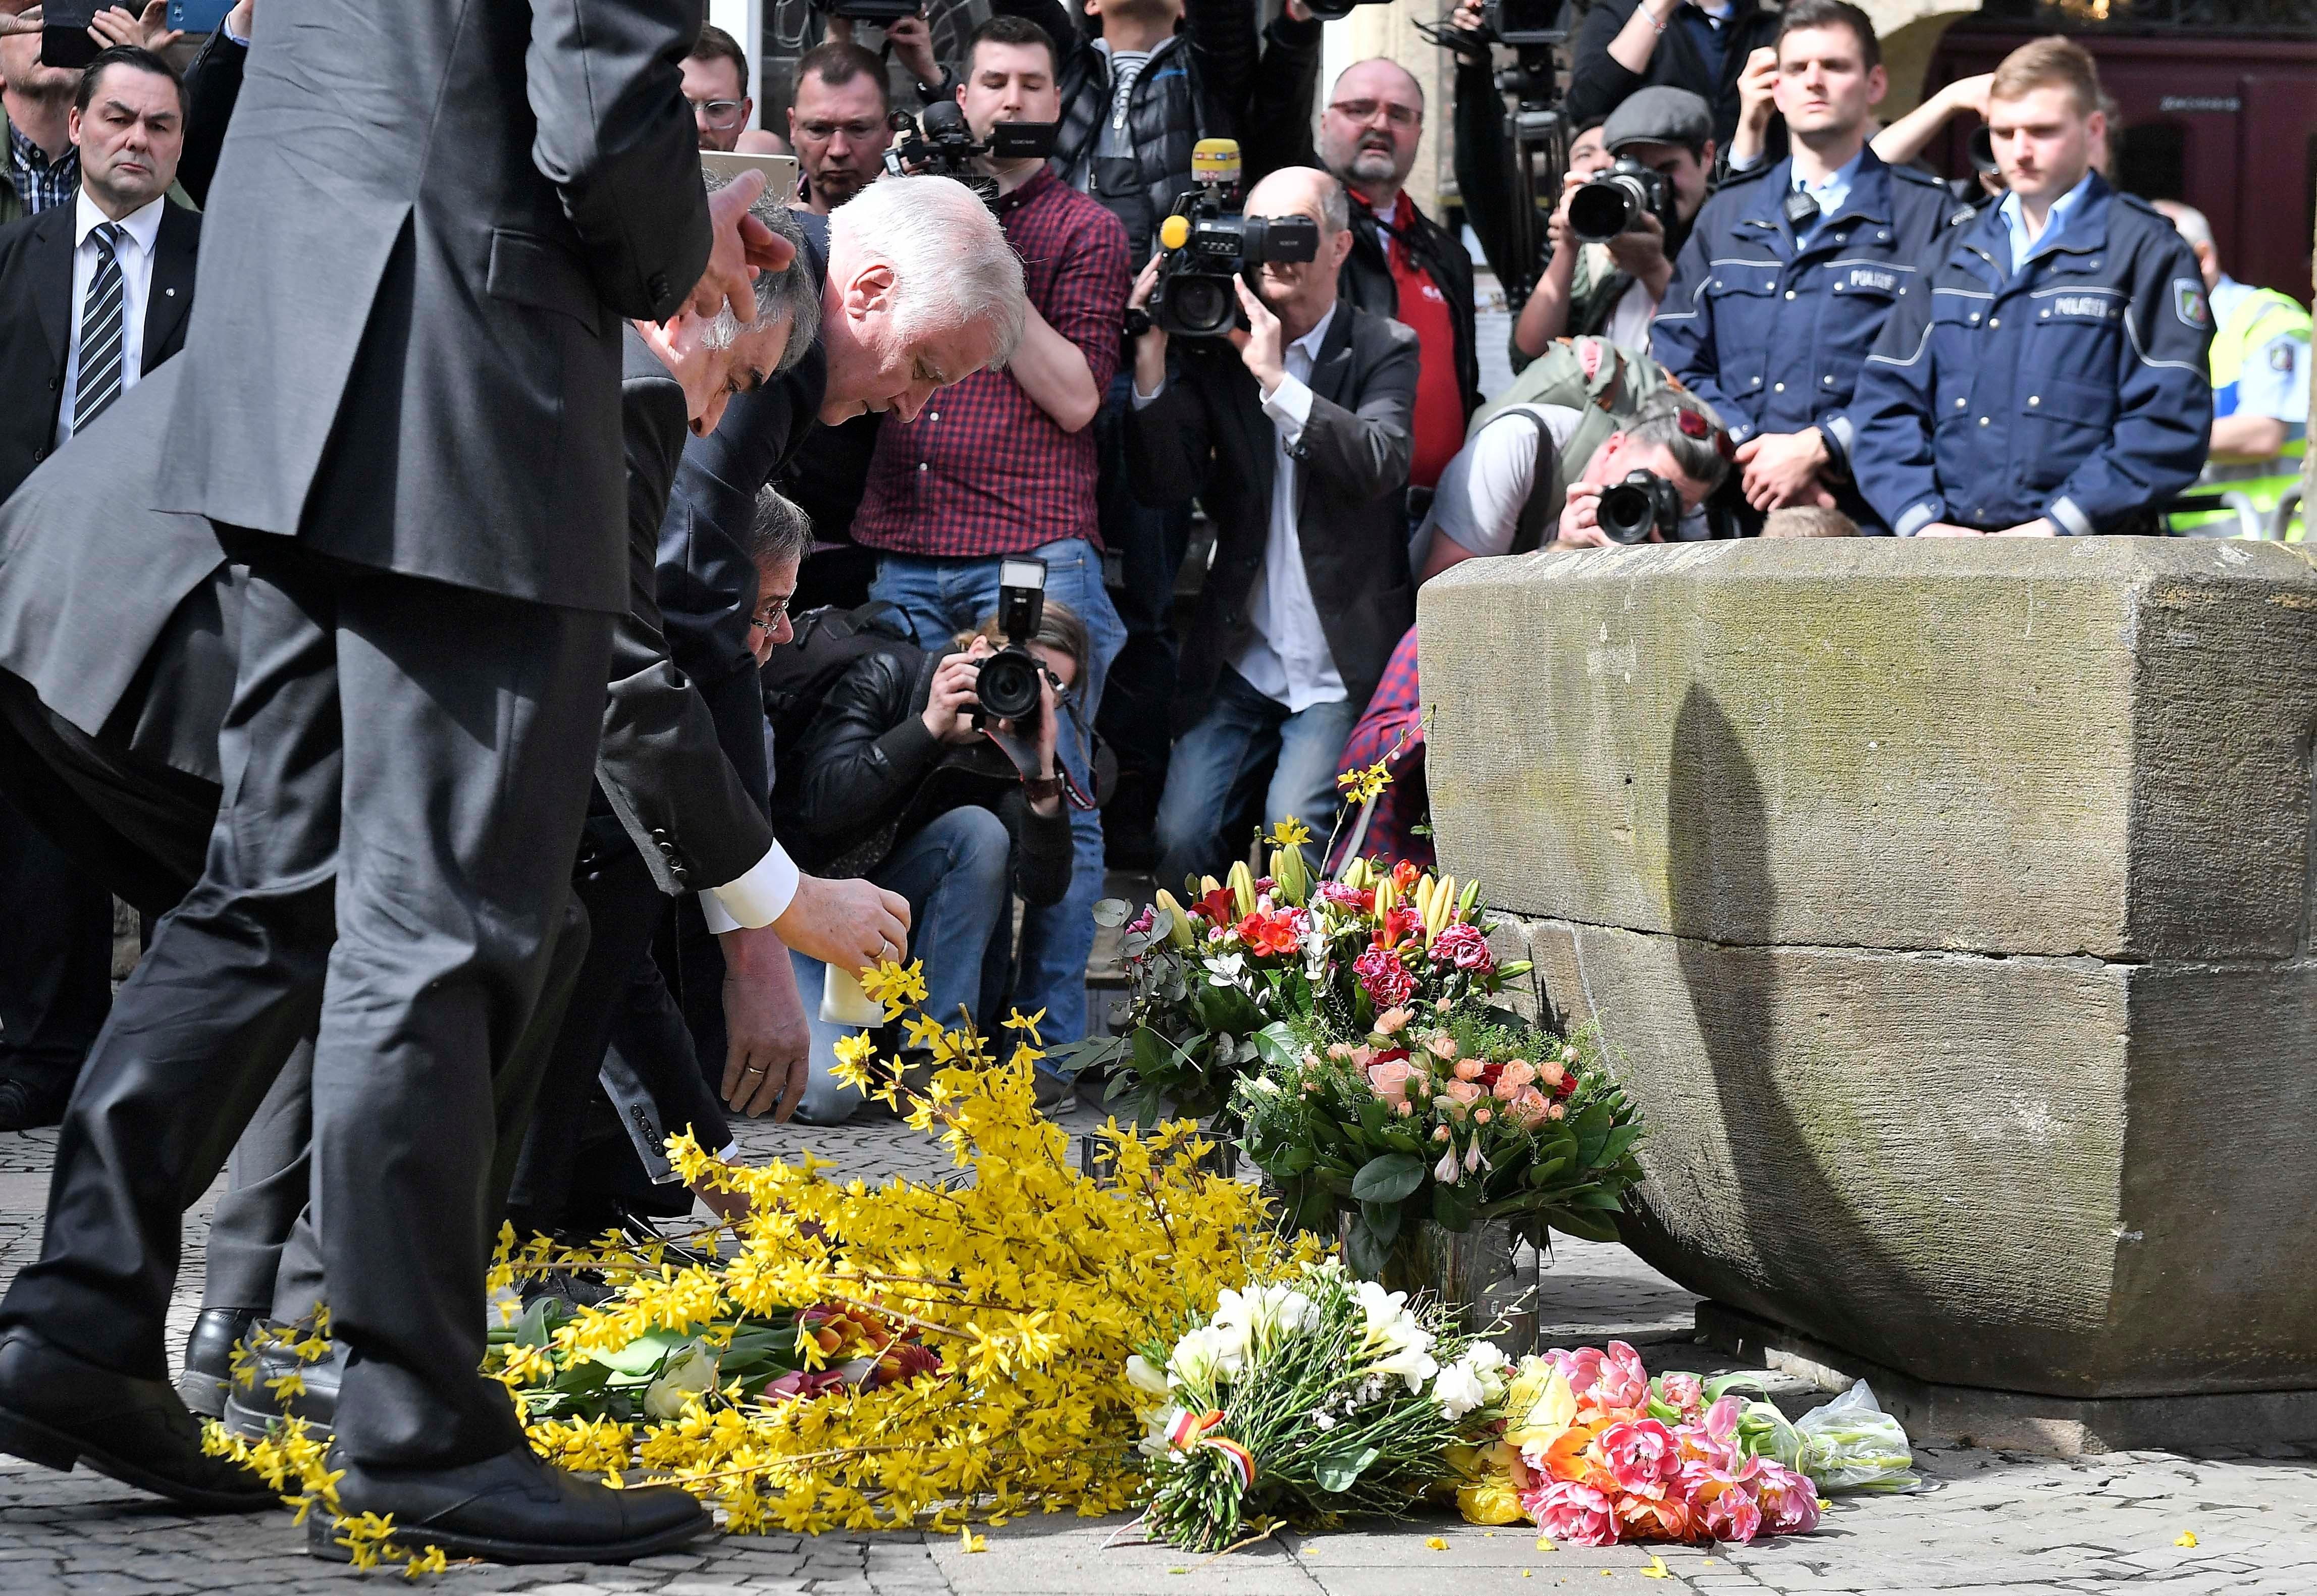 German interior minister Horst Seehofer places flowers at the place in Muenster, Germany, Sunday, April 8, 2018 where a vehicle crashed into a crowd yesterday. A van crashed into people drinking outside a popular bar Saturday in the German city of Muenster, killing two people and injuring 20 others before the driver of the vehicle shot and killed himself inside it, police said. (AP Photo/Martin Meissner)